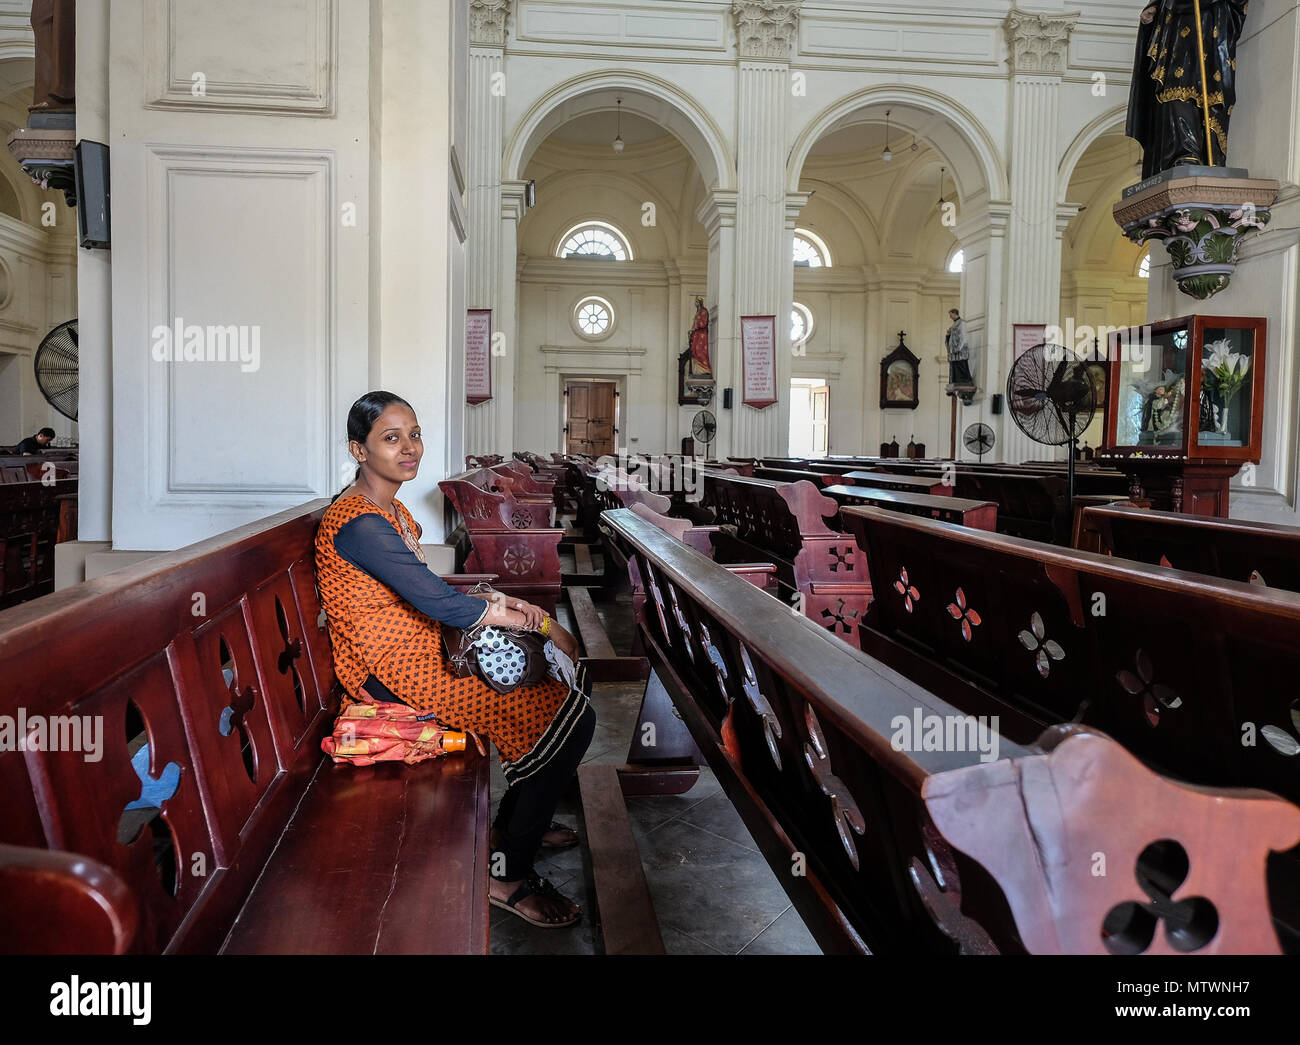 Galle, Sri Lanka - Sep 9, 2015. A young woman praying at the church in Galle, Sri Lanka. Galle was the main port on the island in the 16th century. Stock Photo